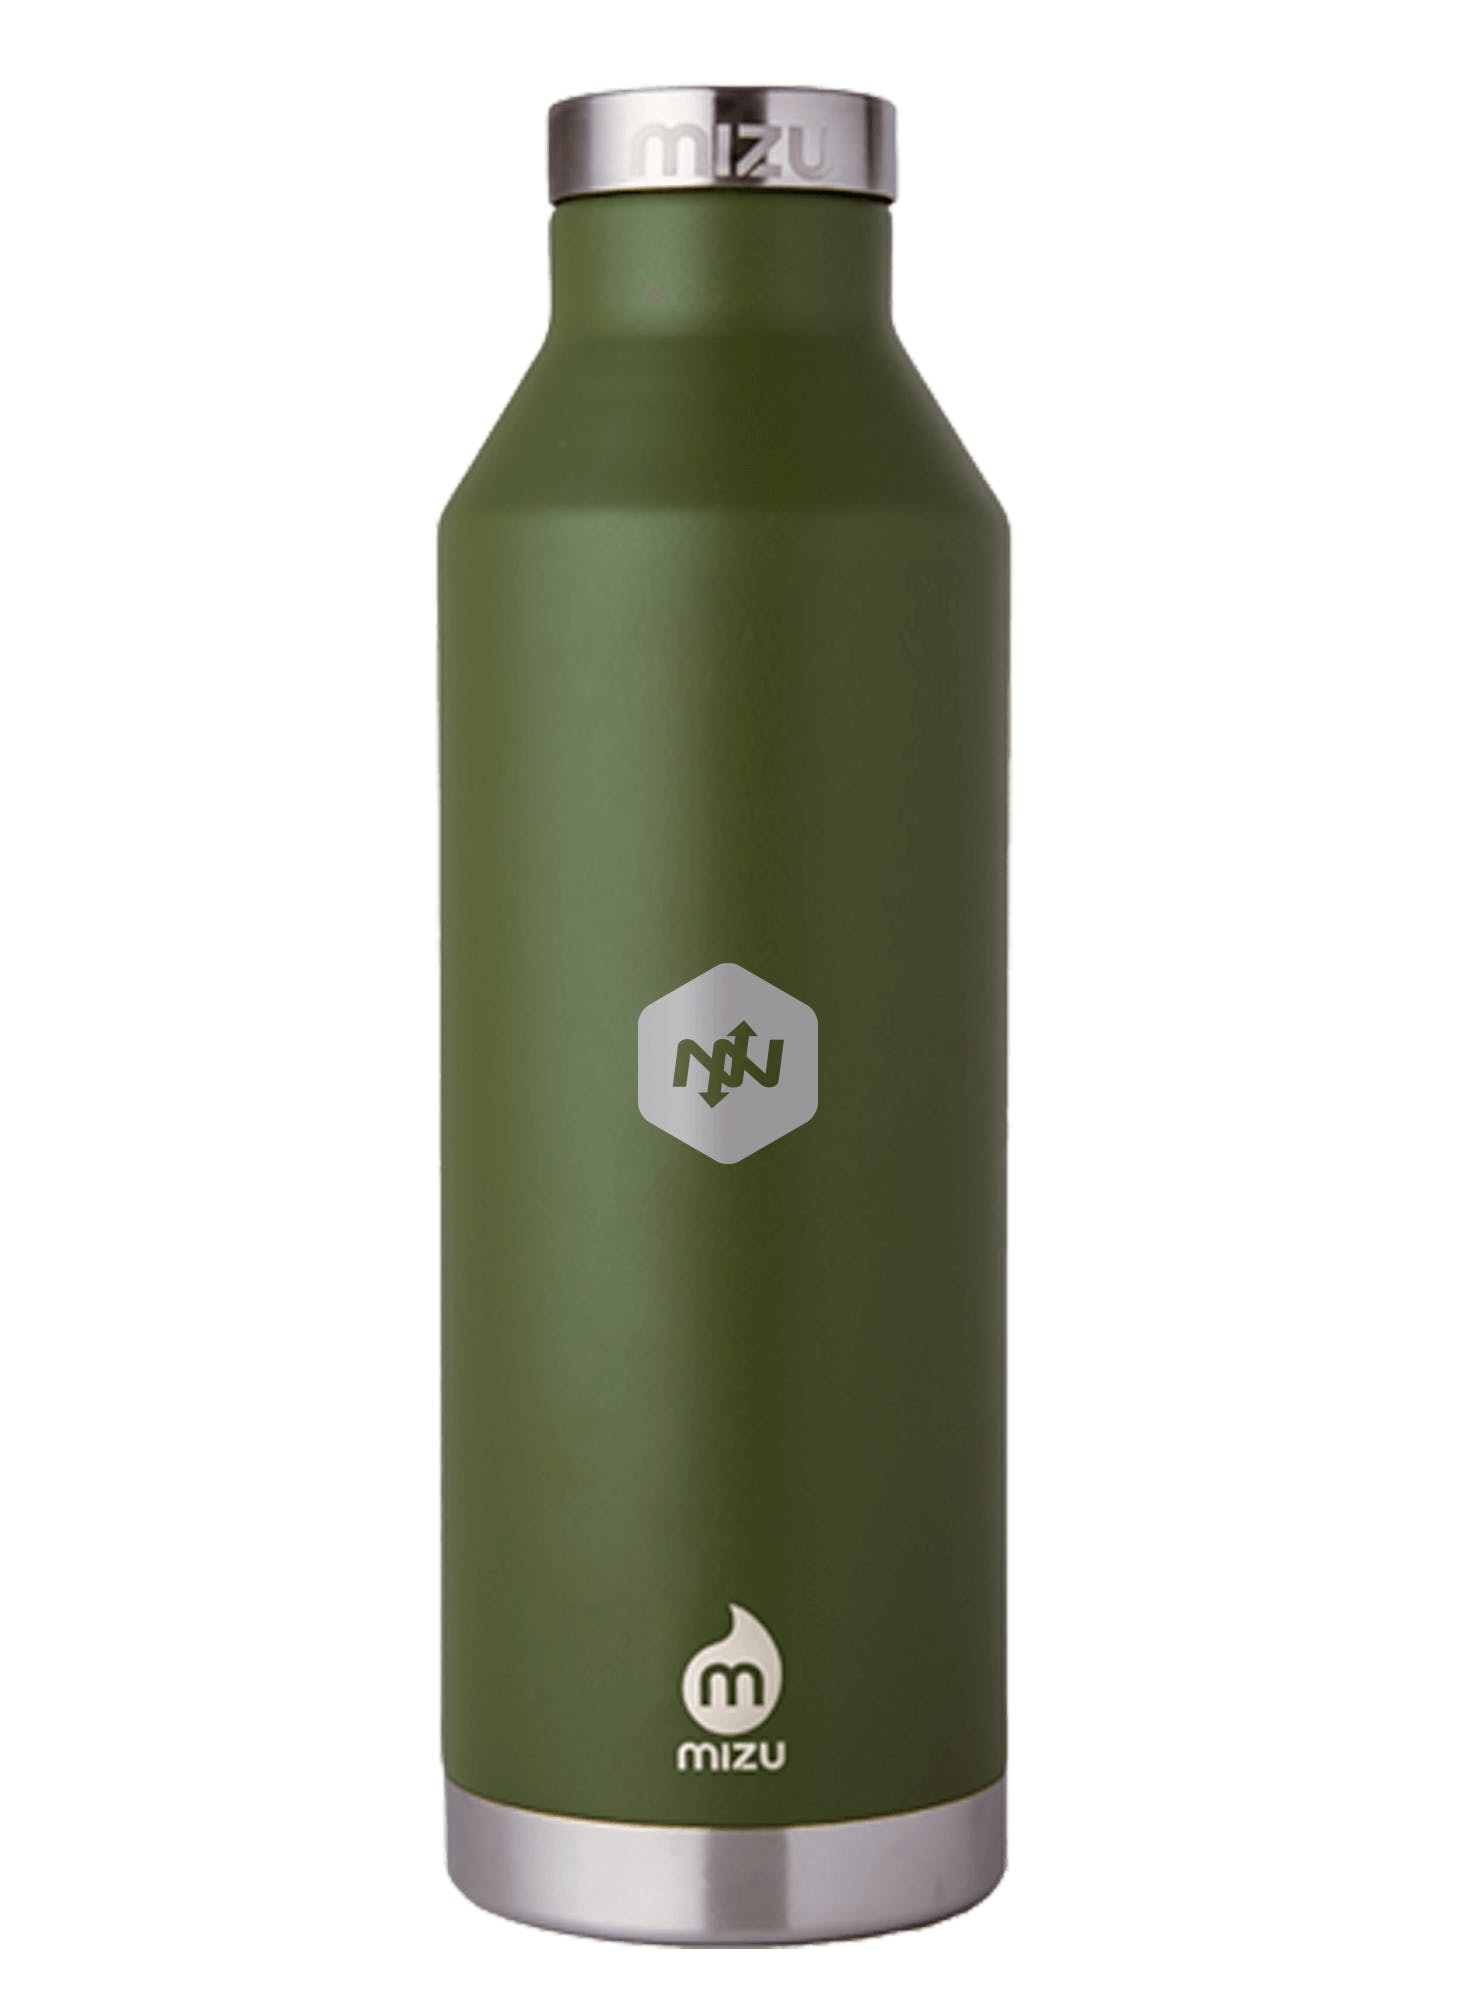 Onnit x MIZU V8 Insulated Water Bottle Bonus Image